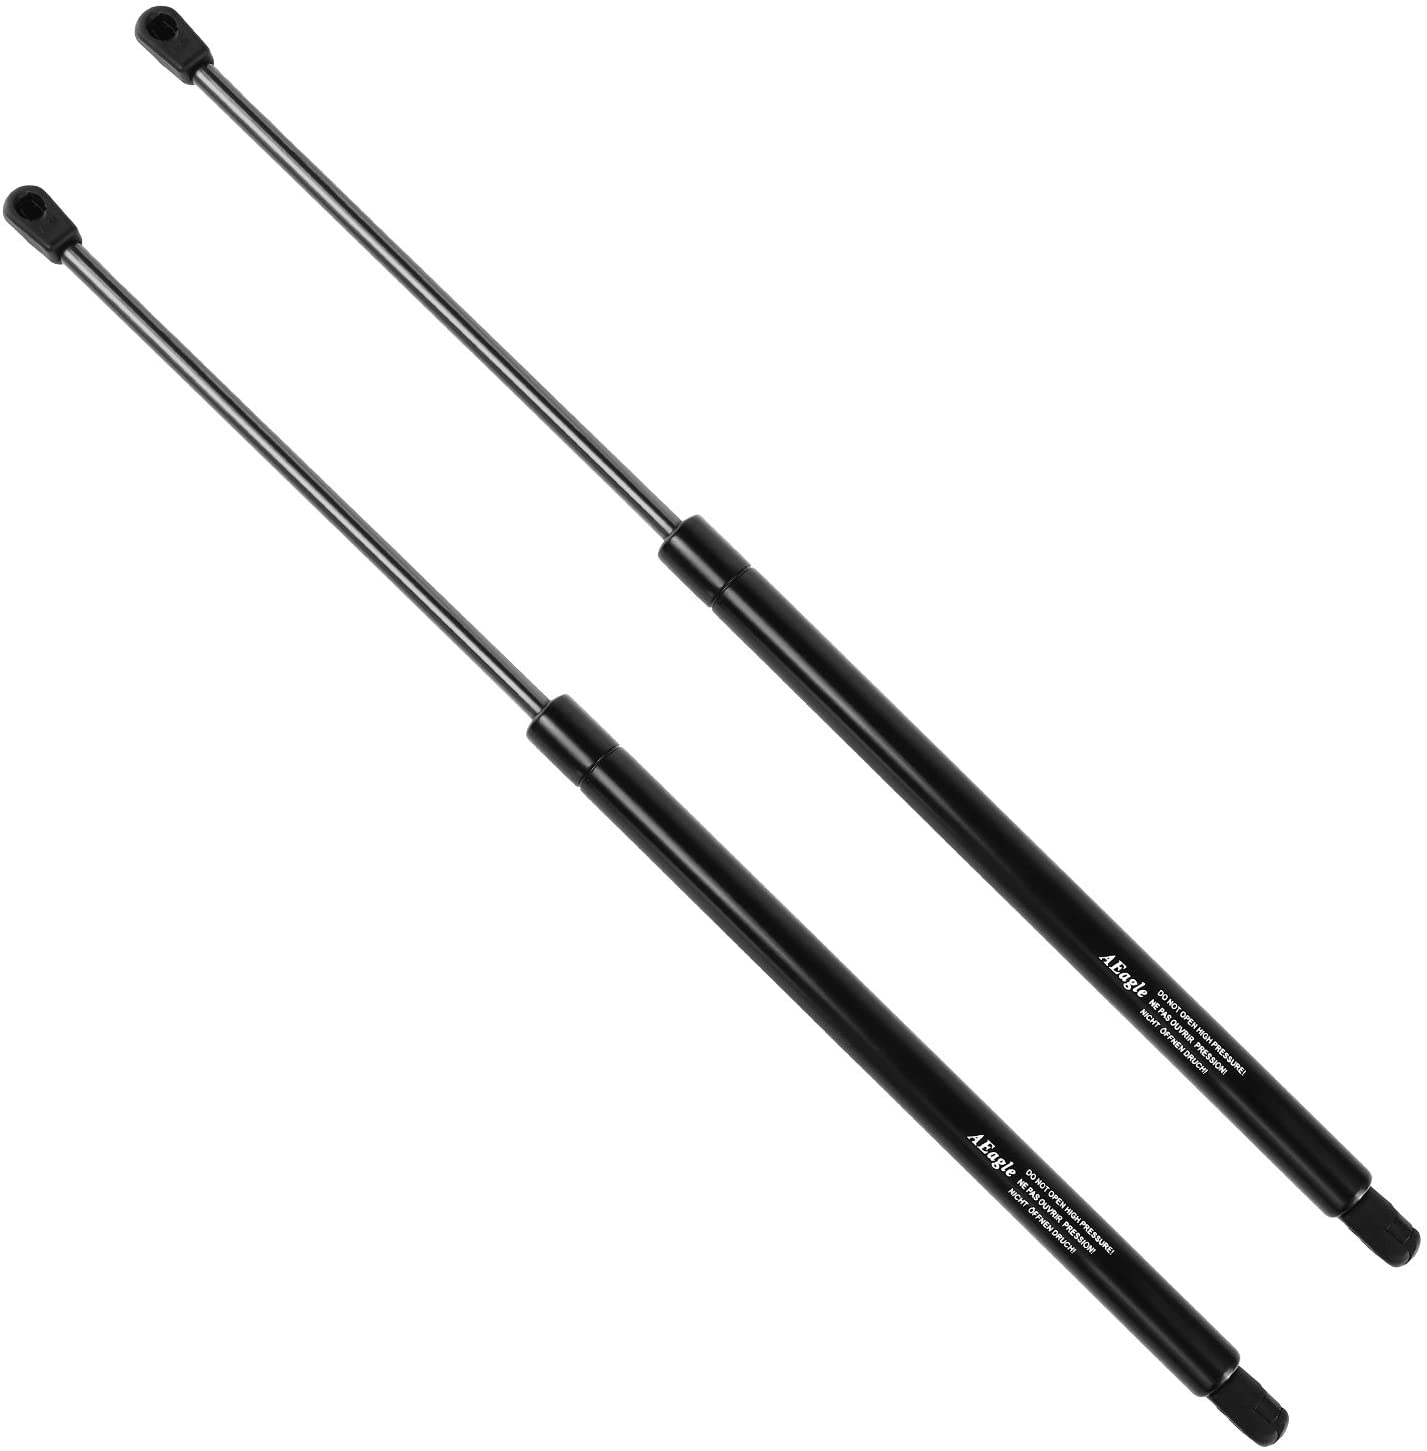 2 Window+2 Tailgate Lift Support Rod Arm Shocks for 02-06 GMC Envoy XL EXT /& LT